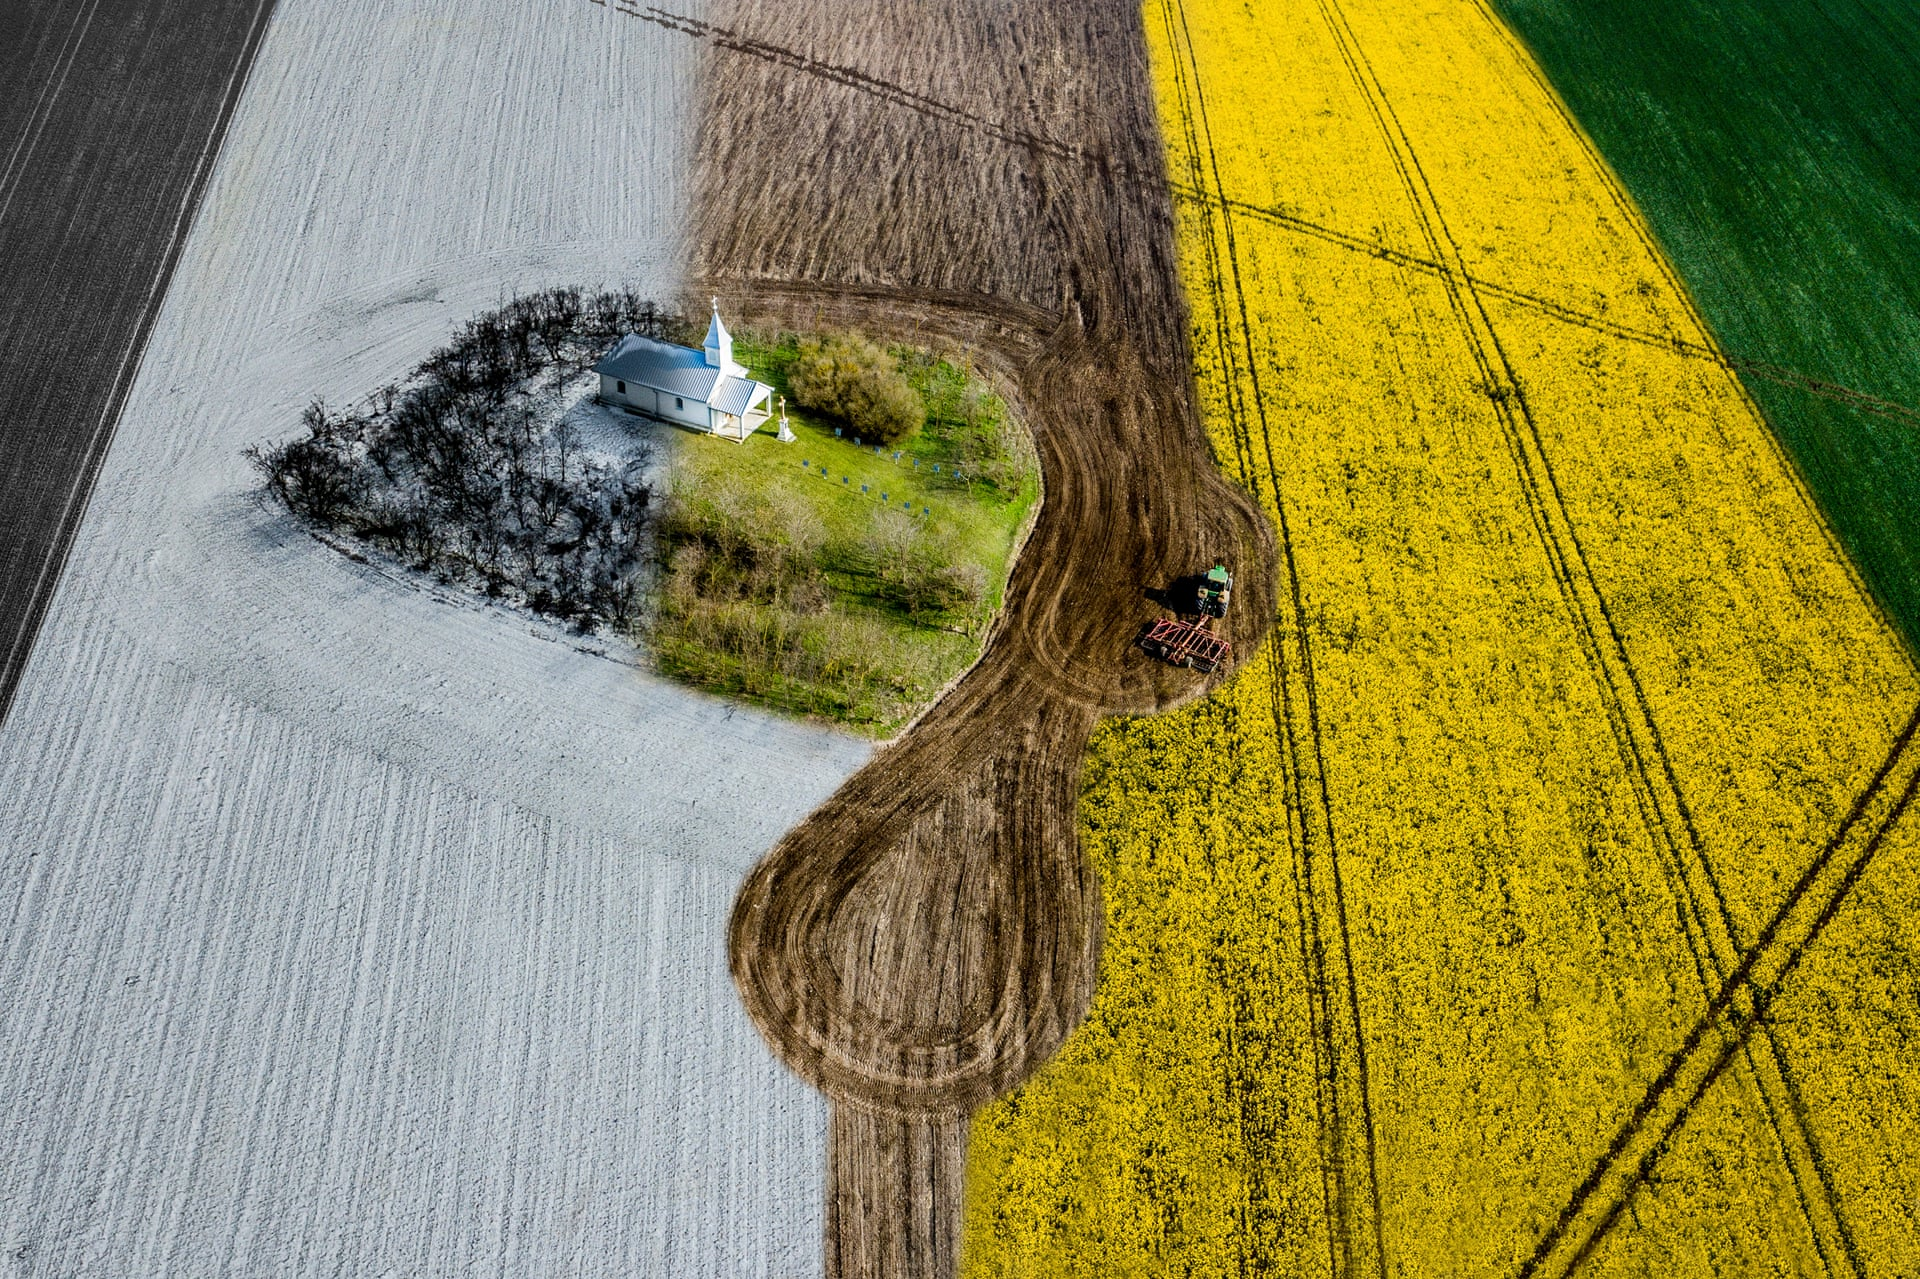 Four Seasons | Urban CommendedA lonely chapel in the middle of a field shot in the four seasons. This is the fifth in this series. A tractor is working the fieldPhotograph: Ovi D. Pop/Drone Photography Awards 2021